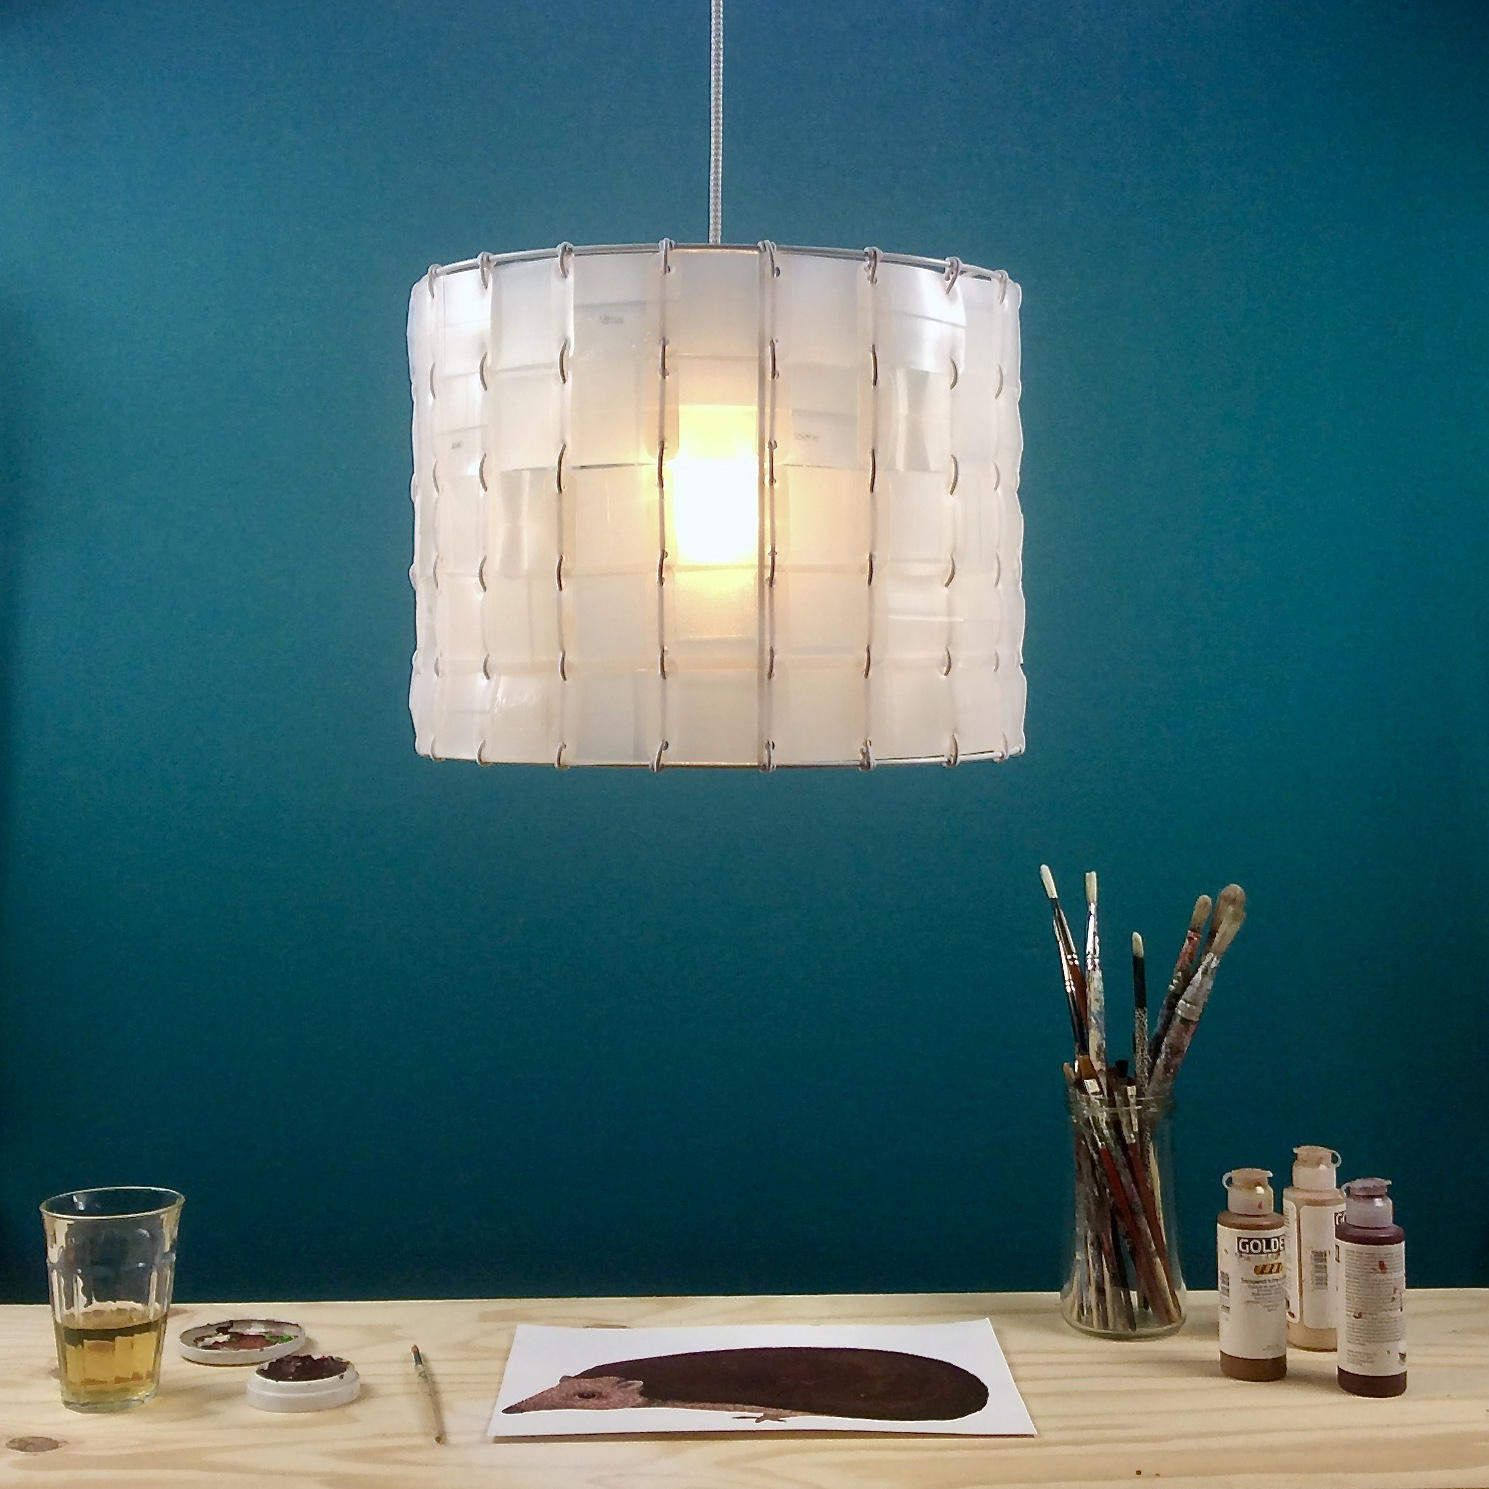 Pendant lamp, handmade with subtile mosaic pattern by PouBelleDesign on Etsy